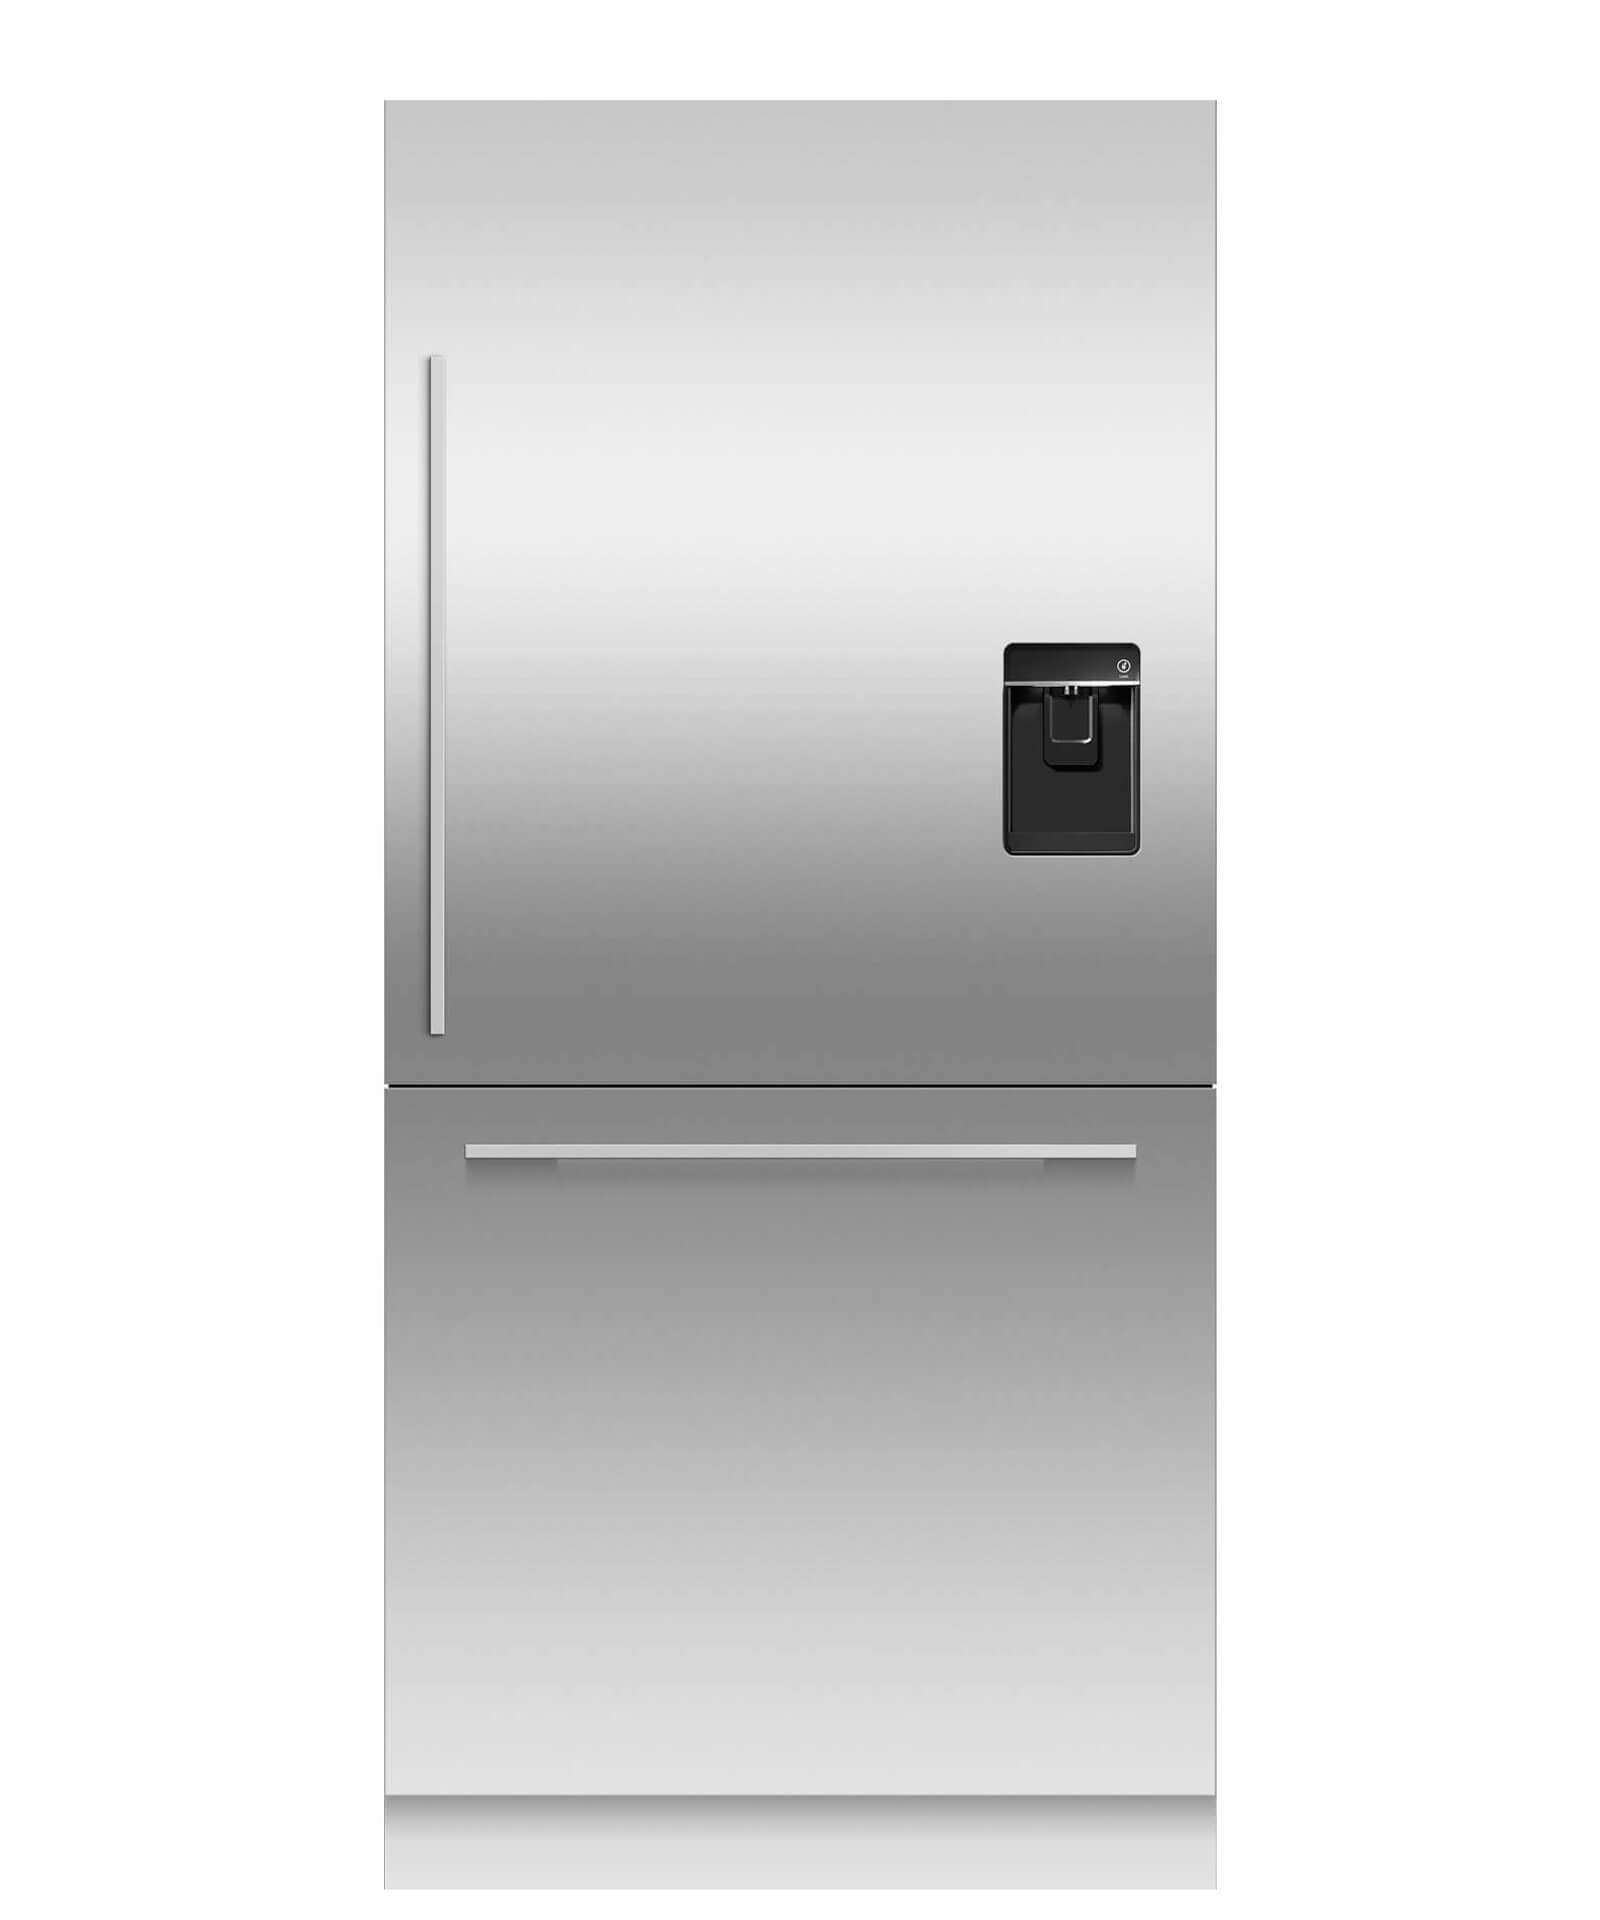 "Fisher and Paykel Integrated Refrigerator Freezer, 36"", 16.8cu ft, Panel Ready, Ice & Water"